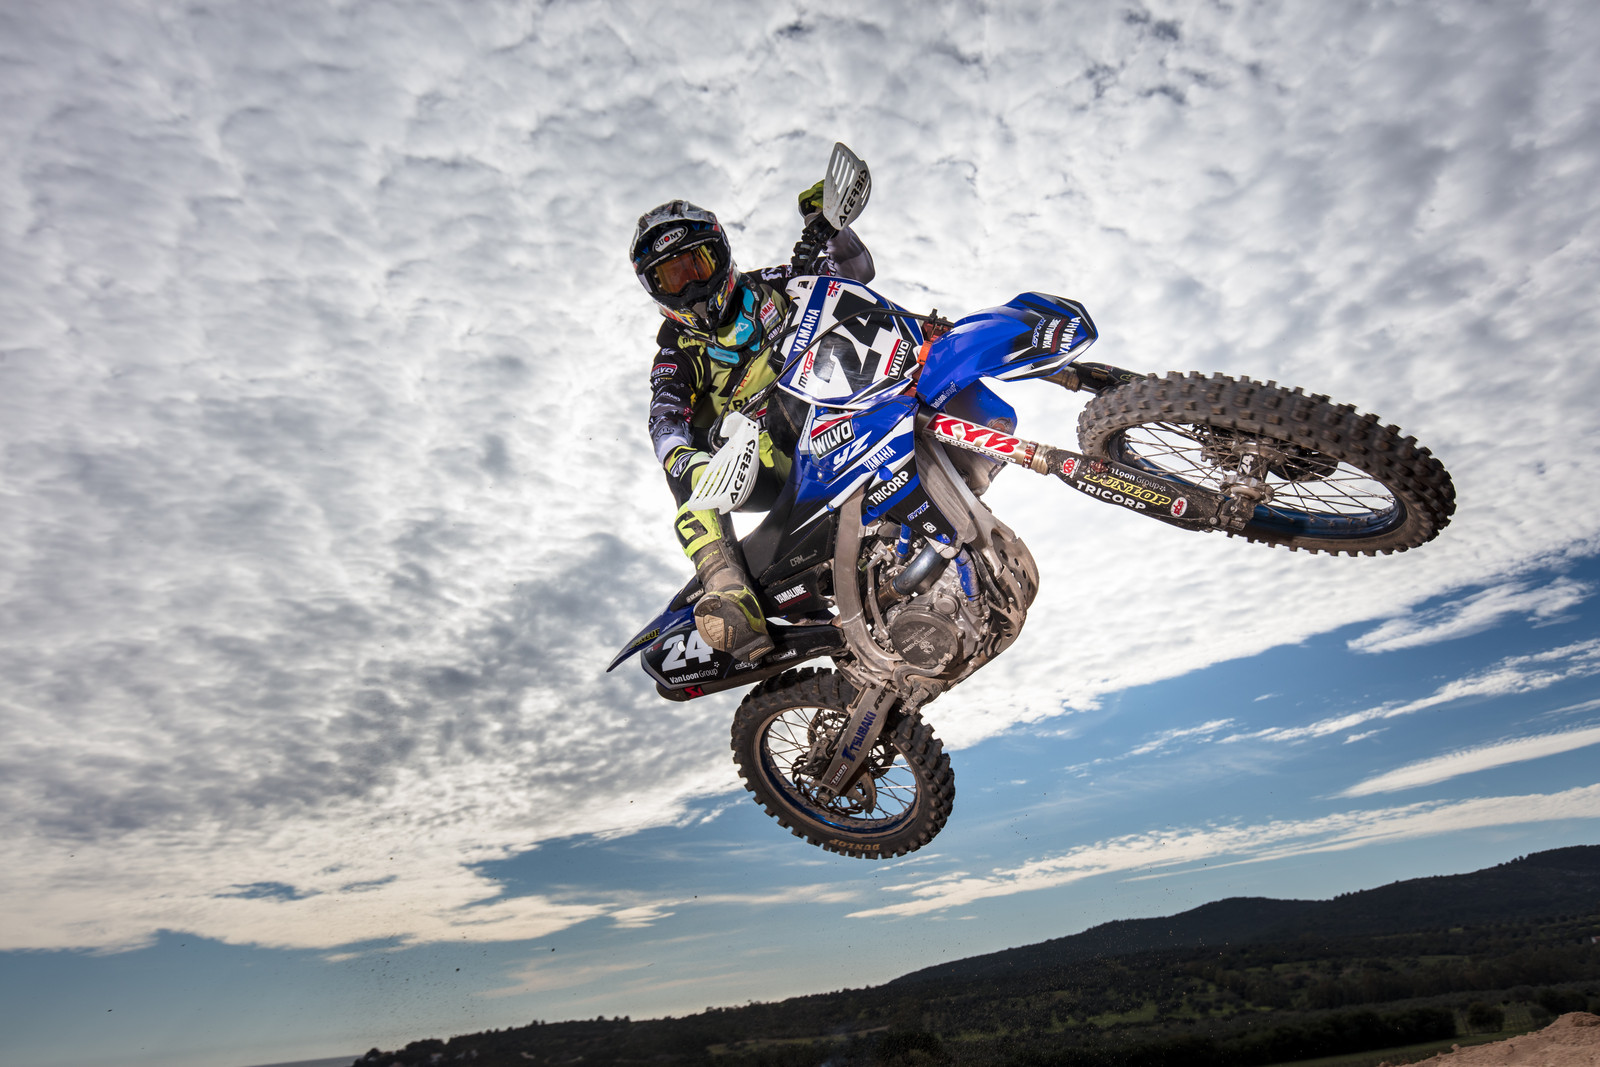 Shaun Simpson - First Look: 2017 Monster Energy & Wilvo Yamaha MXGP Teams - Motocross Pictures - Vital MX